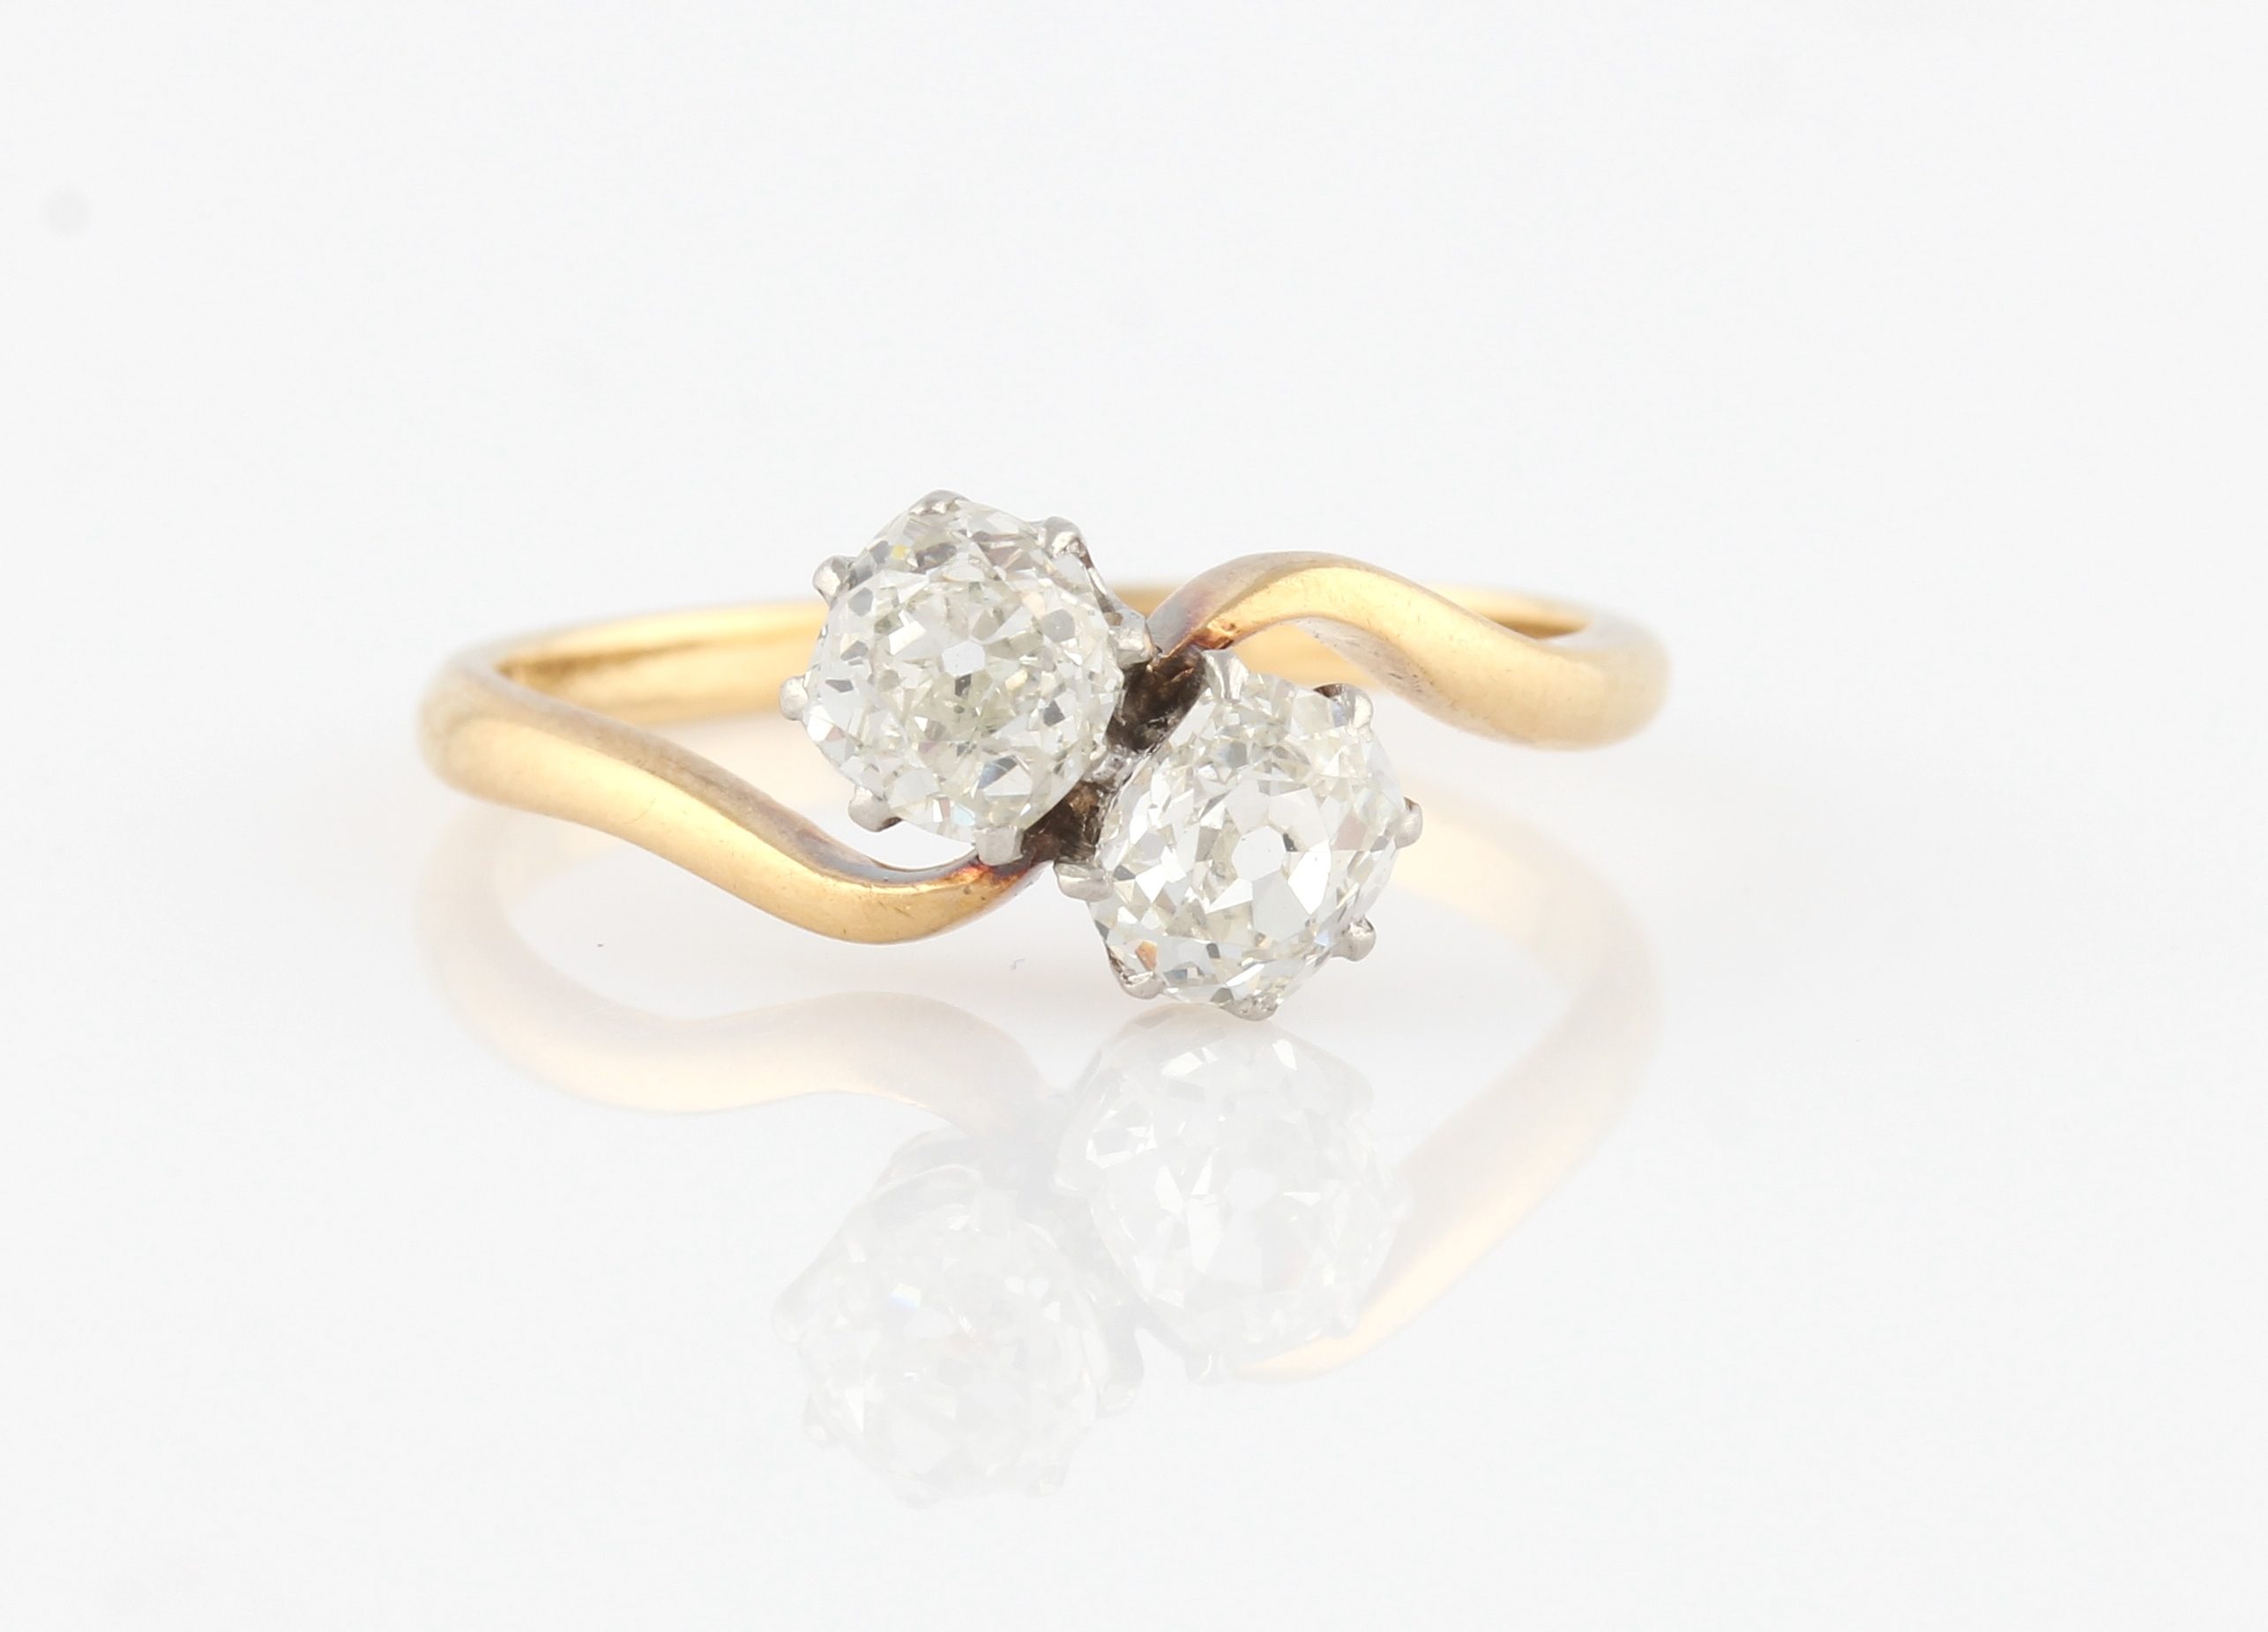 Lot 3 - A two stone diamond ring, set with two old cut diamonds, each measuring approx. 0.50ct, in a cross